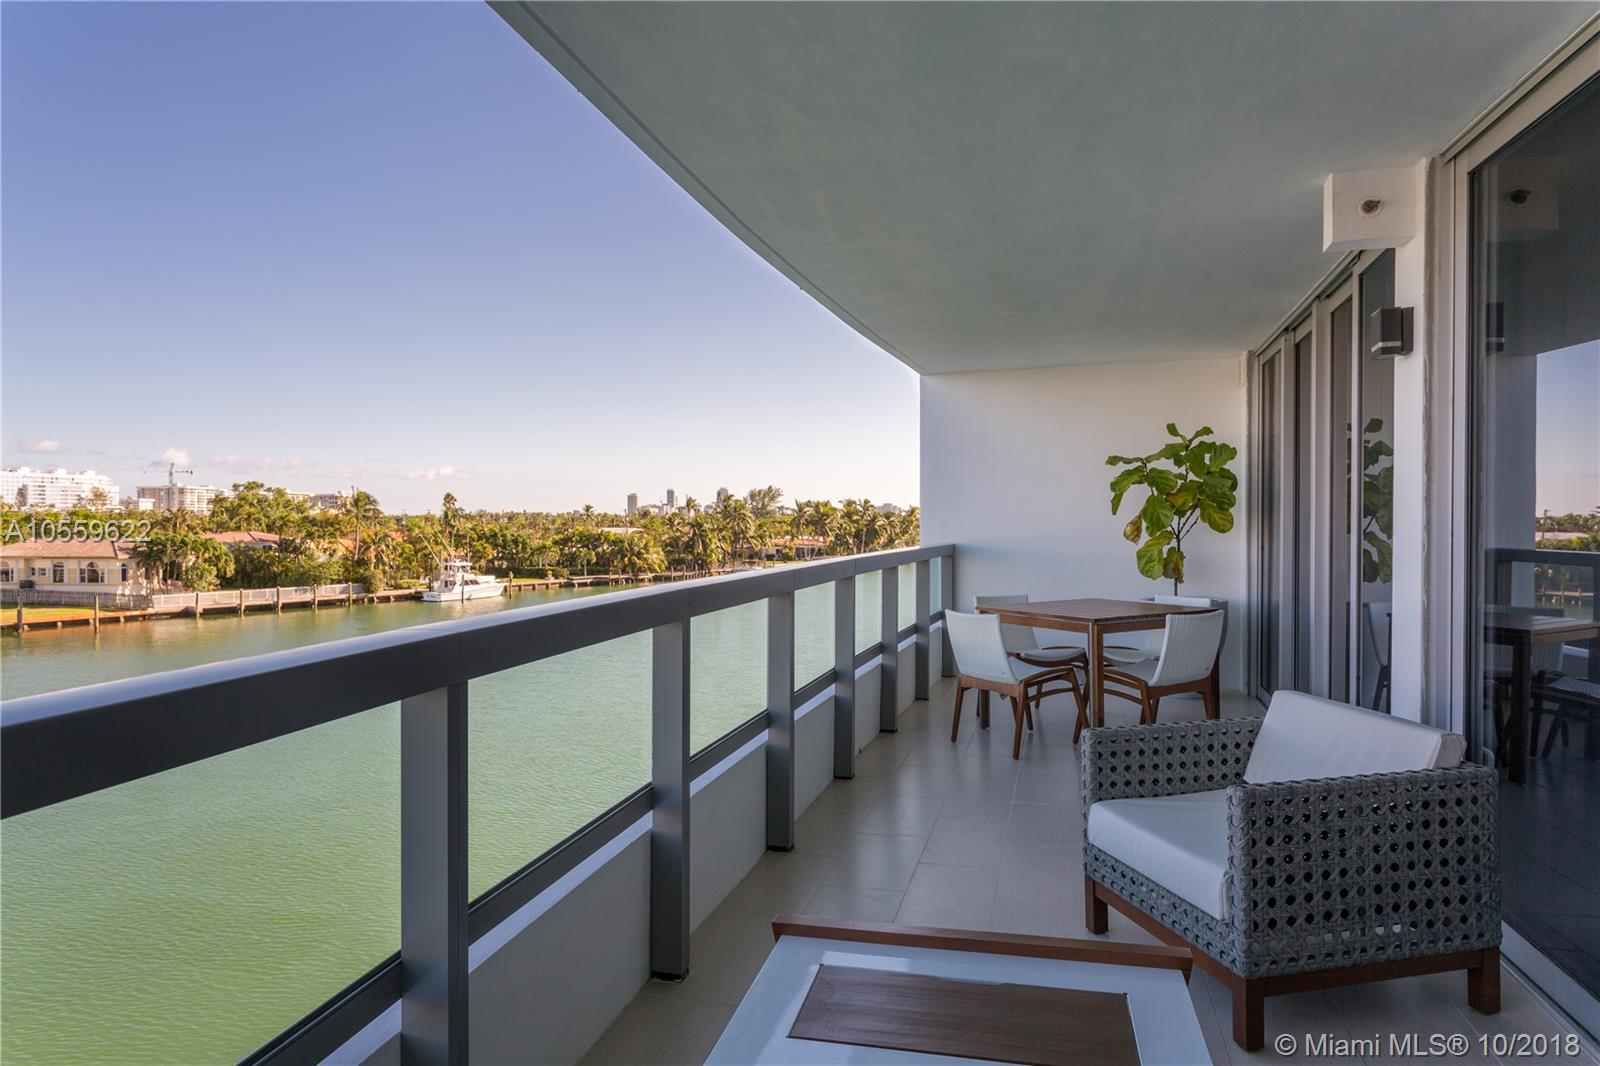 Beautiful turn-key unit in highly desired Bay Harbor Islands. Direct east water views for this large 1 bedroom + den unit. Completely furnished and equipped by renowned designer. High-end finishes throughout with modern furniture, stainless steel appliances, washer and dryer inside the unit. Walk-in closets and comes with a storage unit located across from front door. Beautiful rooftop pool. Walking distance coveted Ruth K. Broad elementary school and very close to Bal Harbour shops, restaurants, cafes and beach.